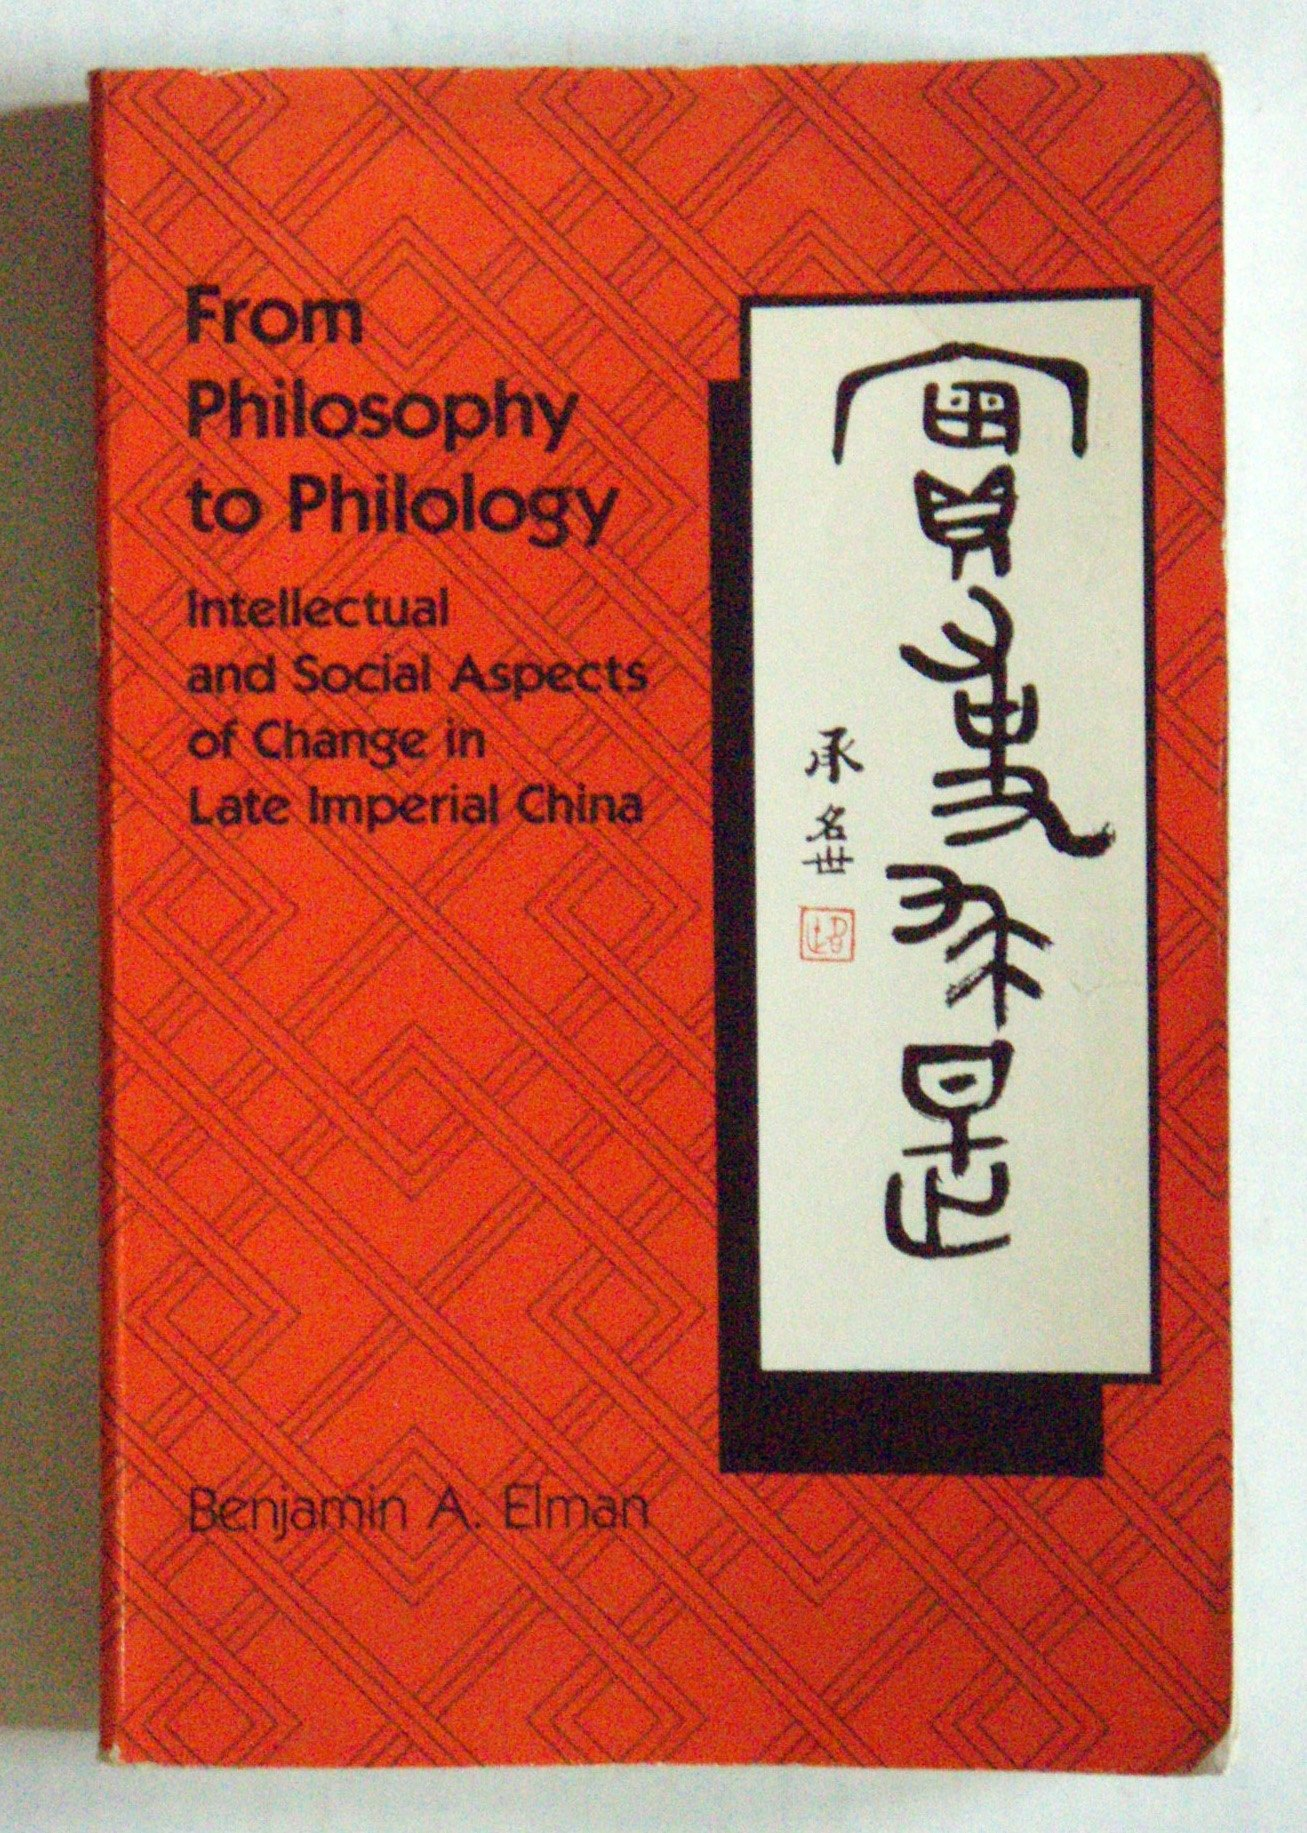 From Philosophy to Philology: Intellectual and Social Aspects of Change in Late Imperial China (Harvard East Asian Series), Elman, Benjamin A.